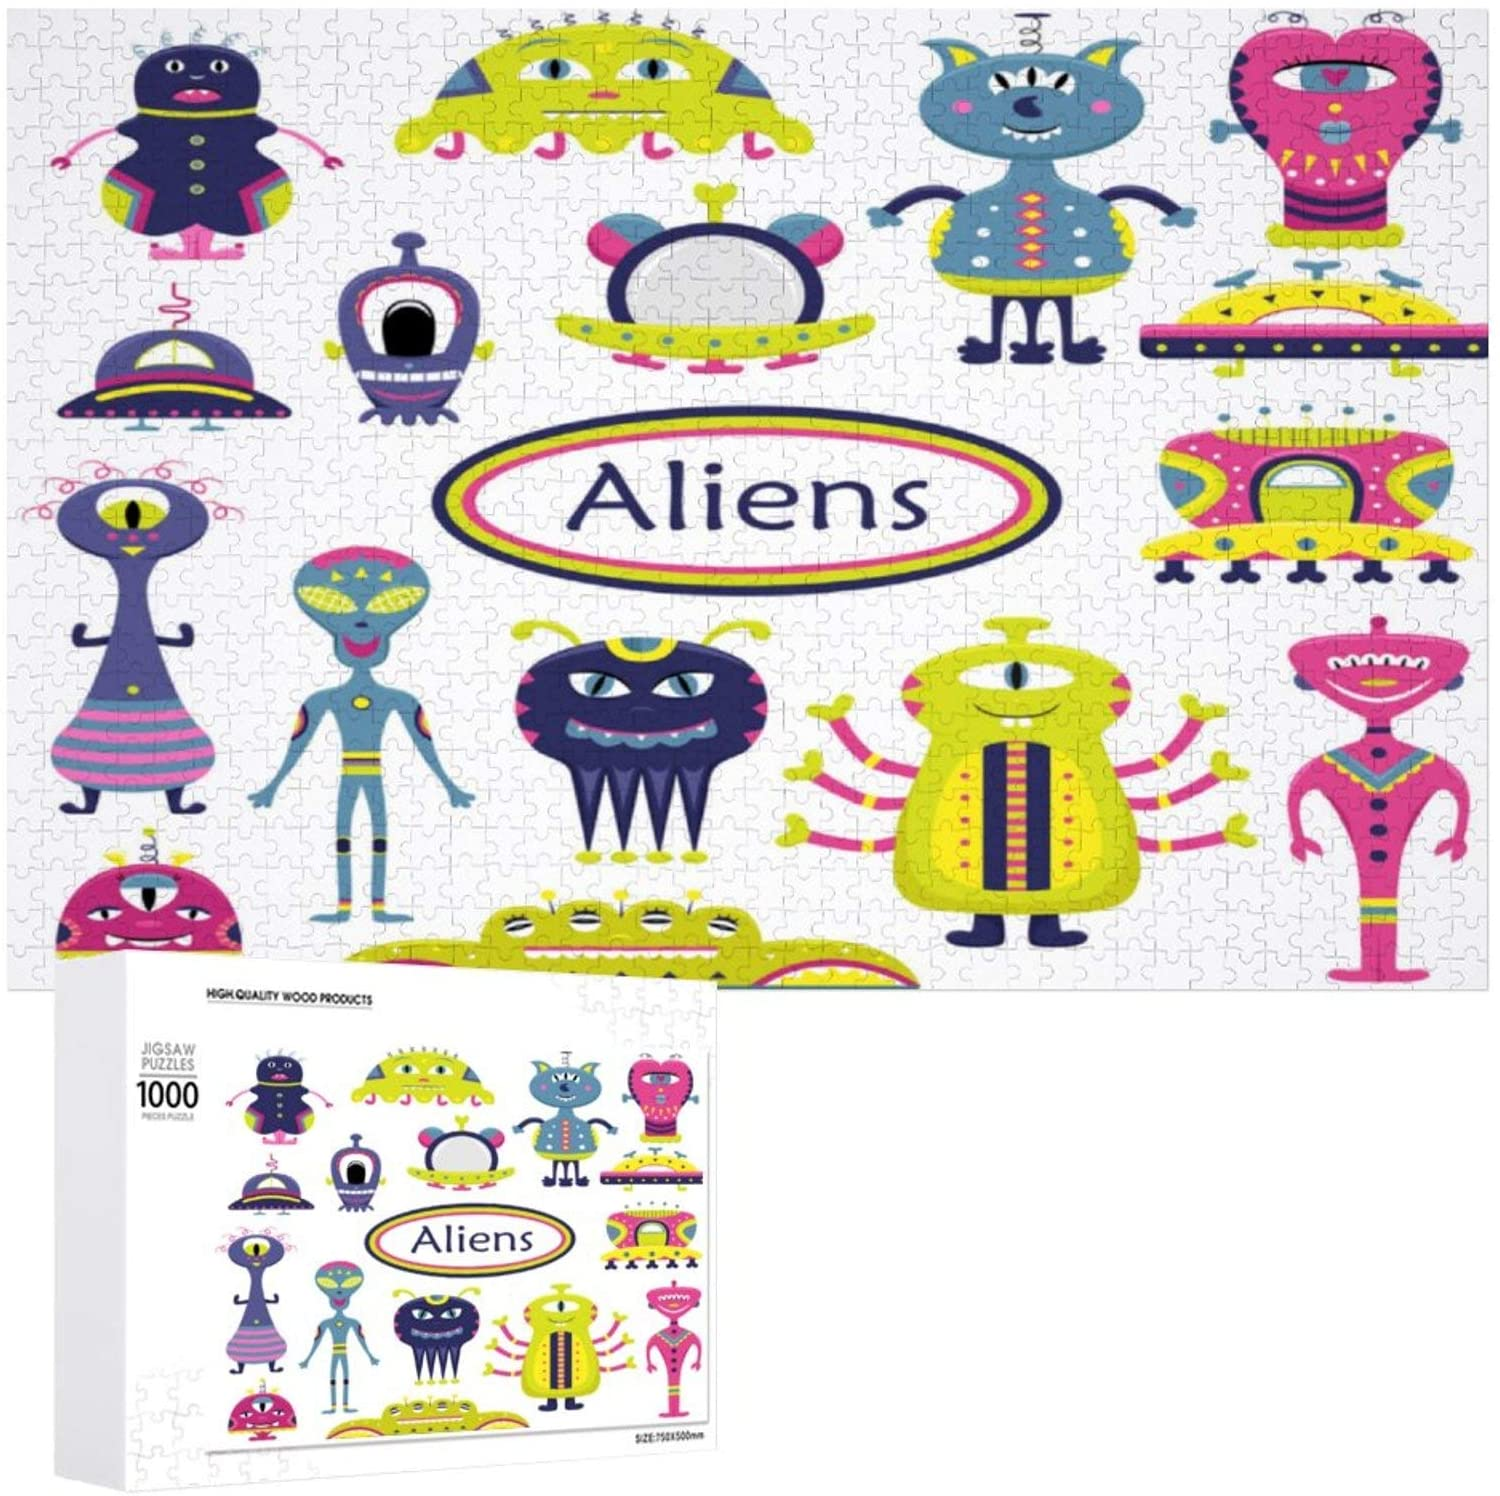 The Cartoon Set with Flat Aliens Funny Characters Wooden Puzzle 1000 Pieces Jigsaw Puzzle for Adults Kids Large Puzzle Game Toys Gift Christmas Holiday Present